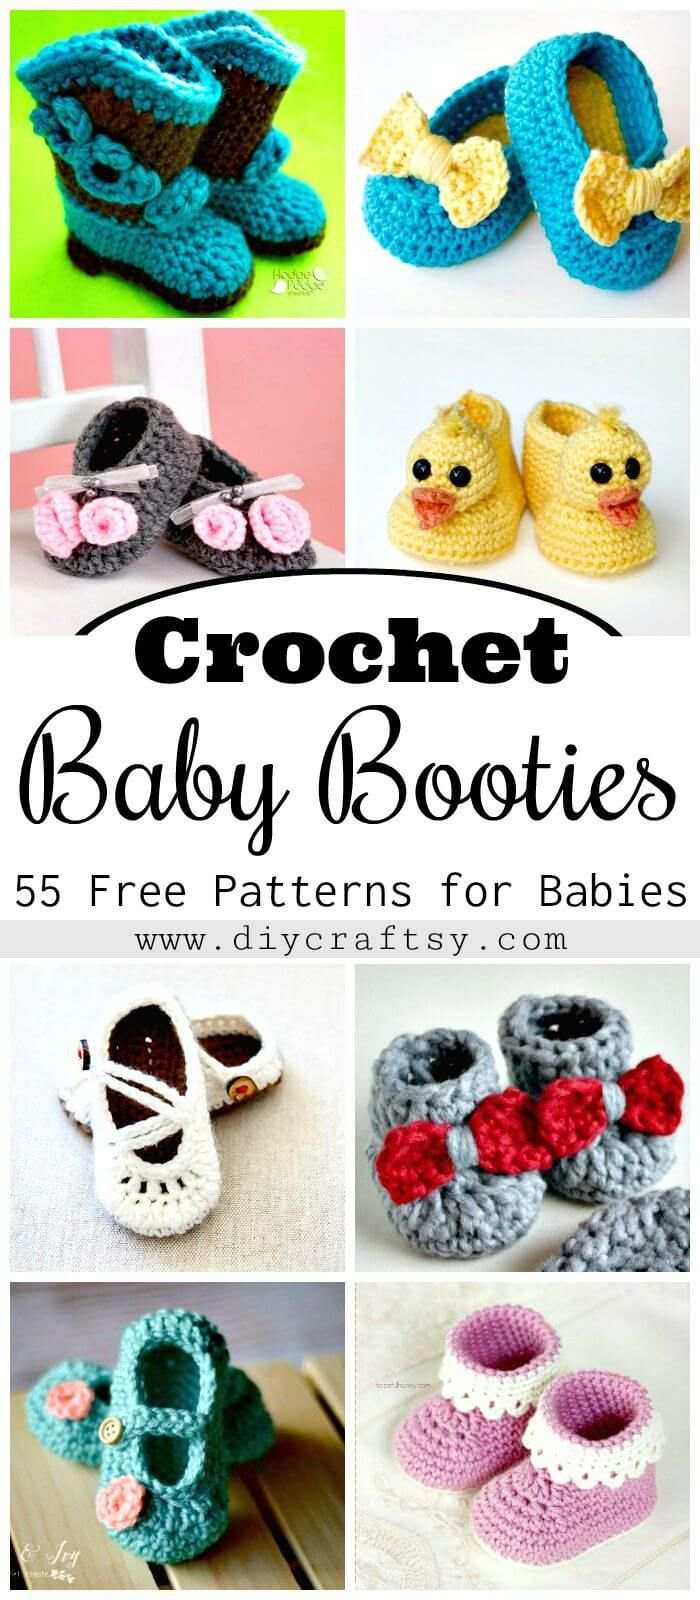 Crochet Baby Booties - Free Crochet Patterns for Babies